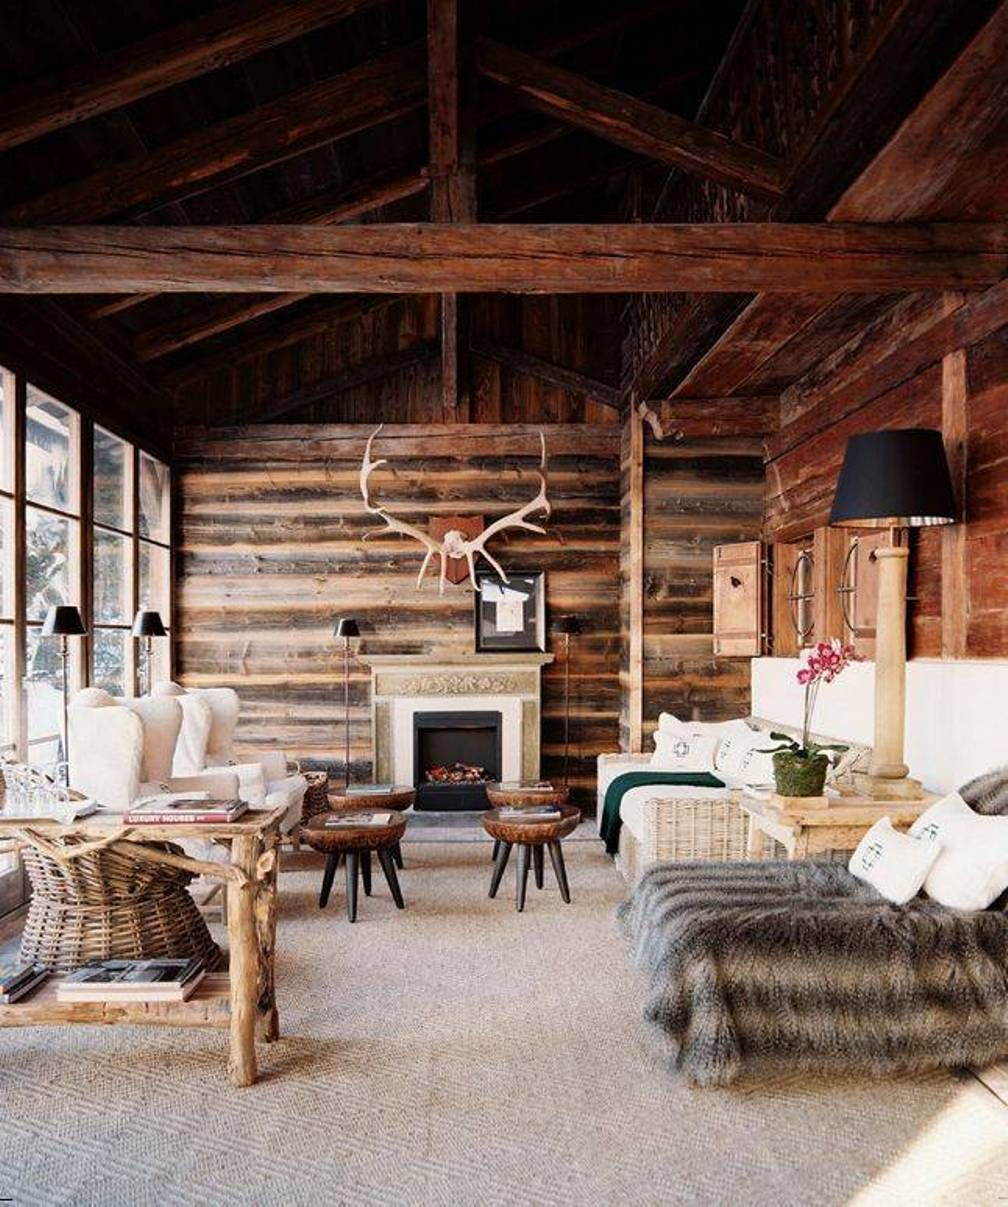 Home Design And Decor Rustic Interior Design Style For The Home